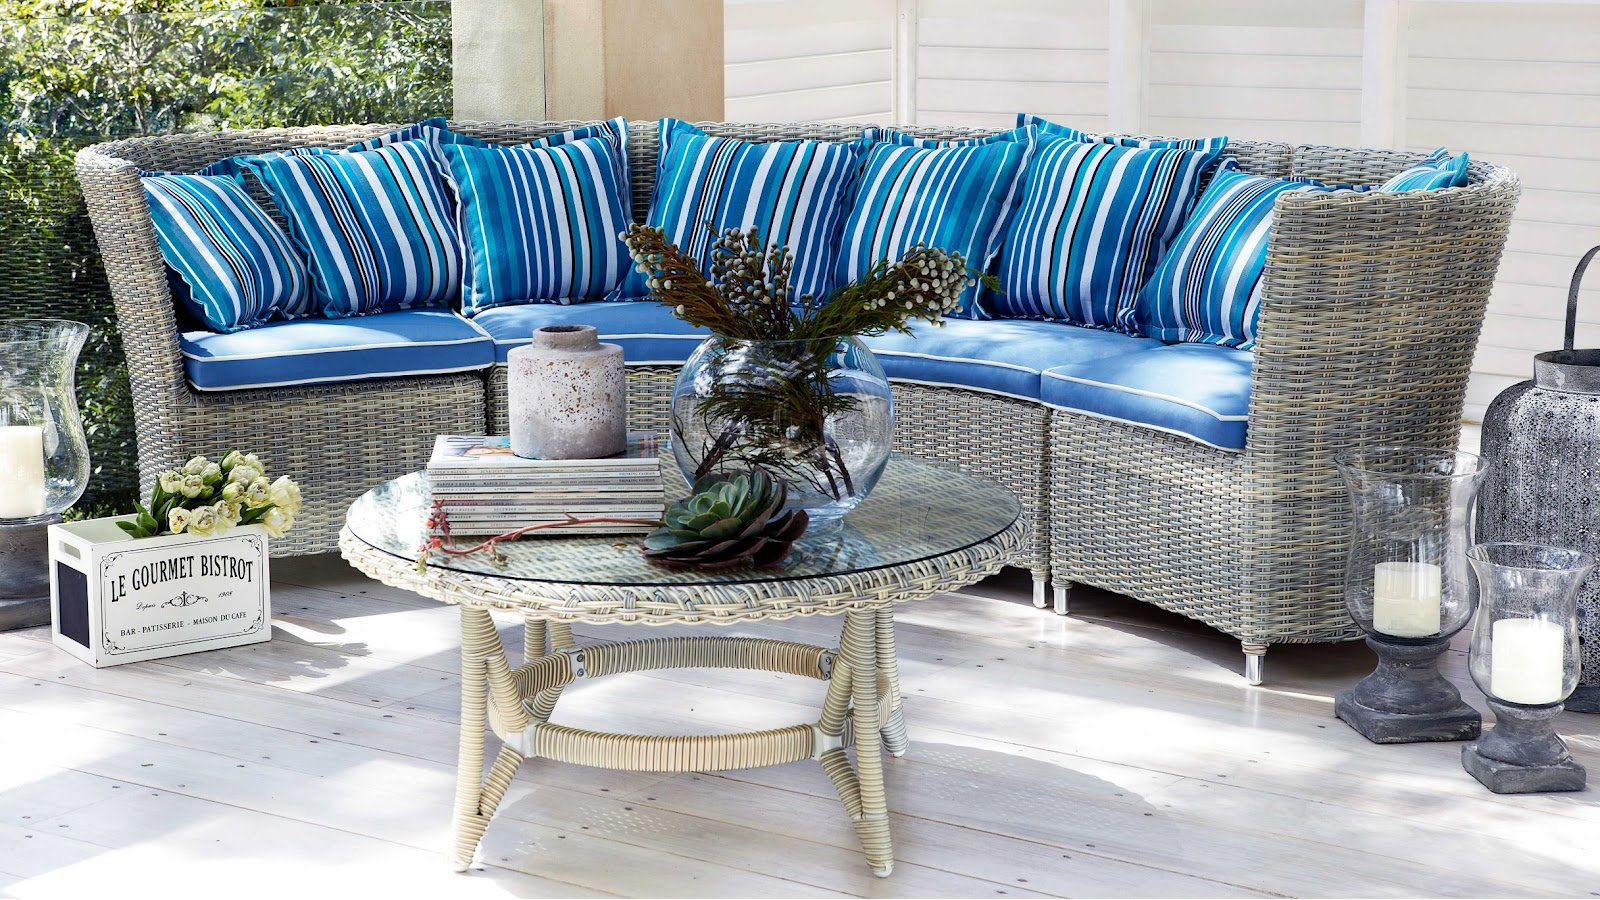 Little cove design september 2012 for Outdoor furniture harvey norman